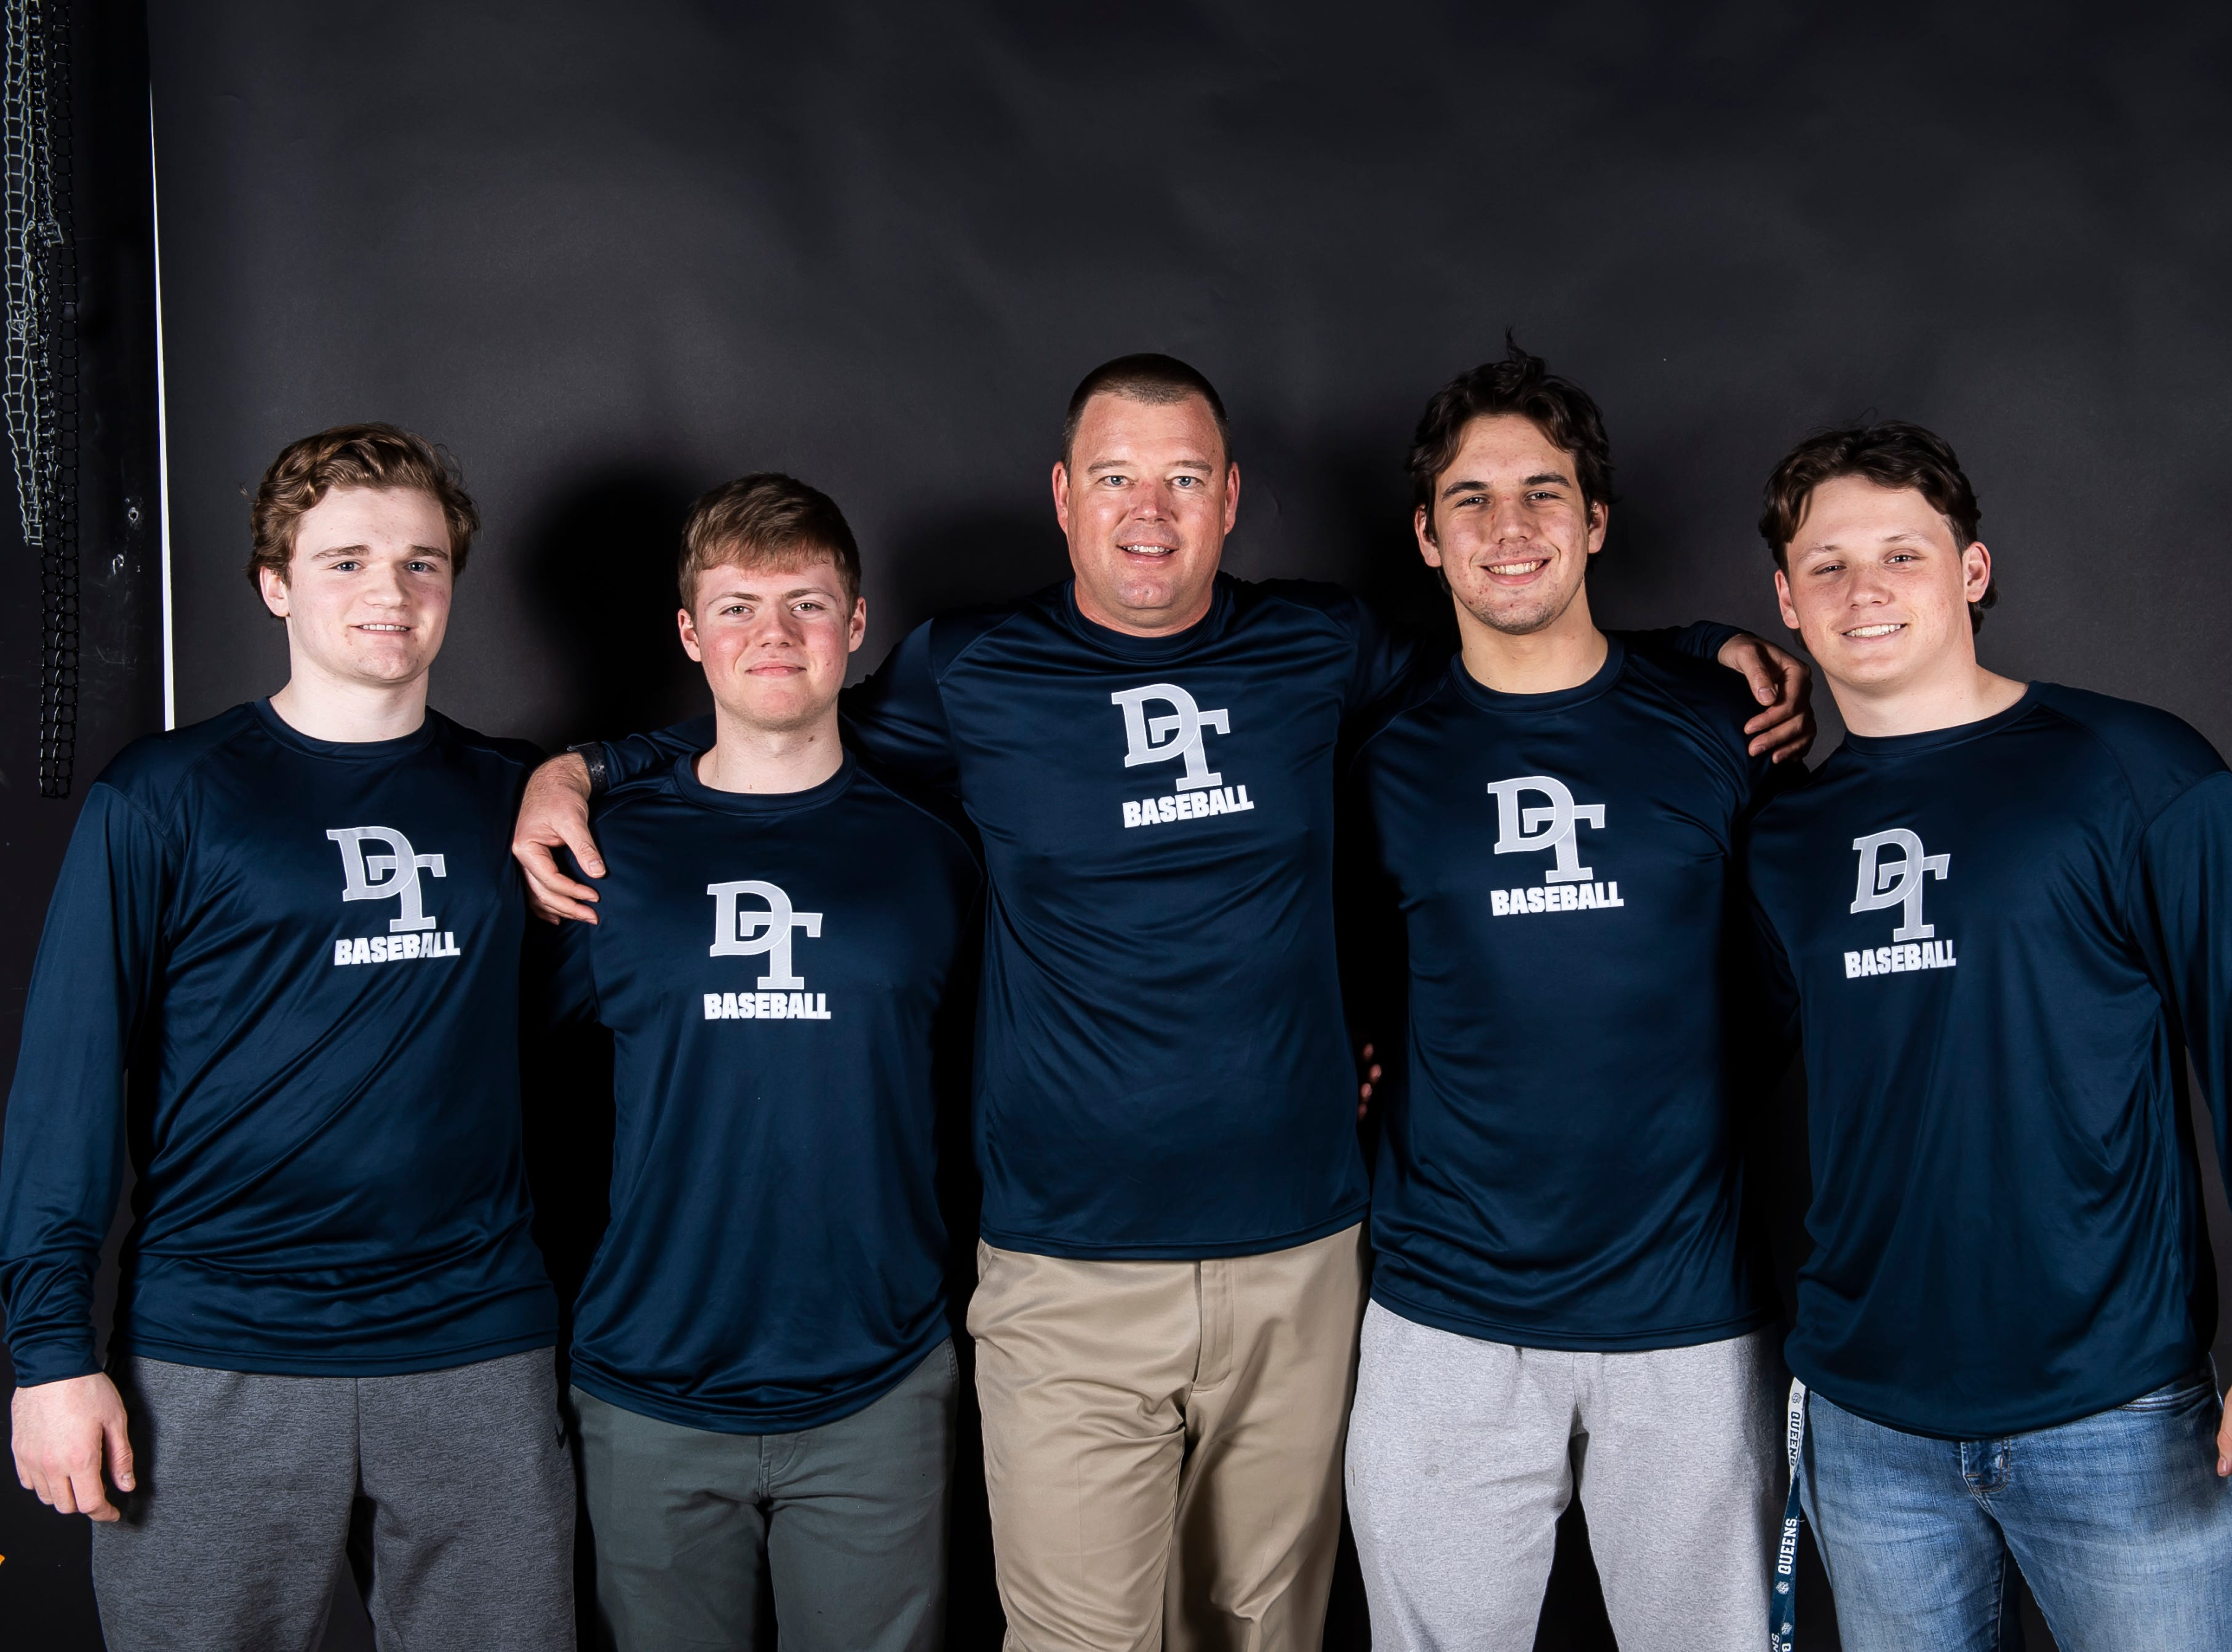 (From left) Dallastown baseball's Chase Hoecke, Alex Weakland, coach Greg Kinneman, Peter Capobianco and Julian Bailey pose in the GameTimePA photo booth during spring sports media day in York Sunday, March 10, 2019.